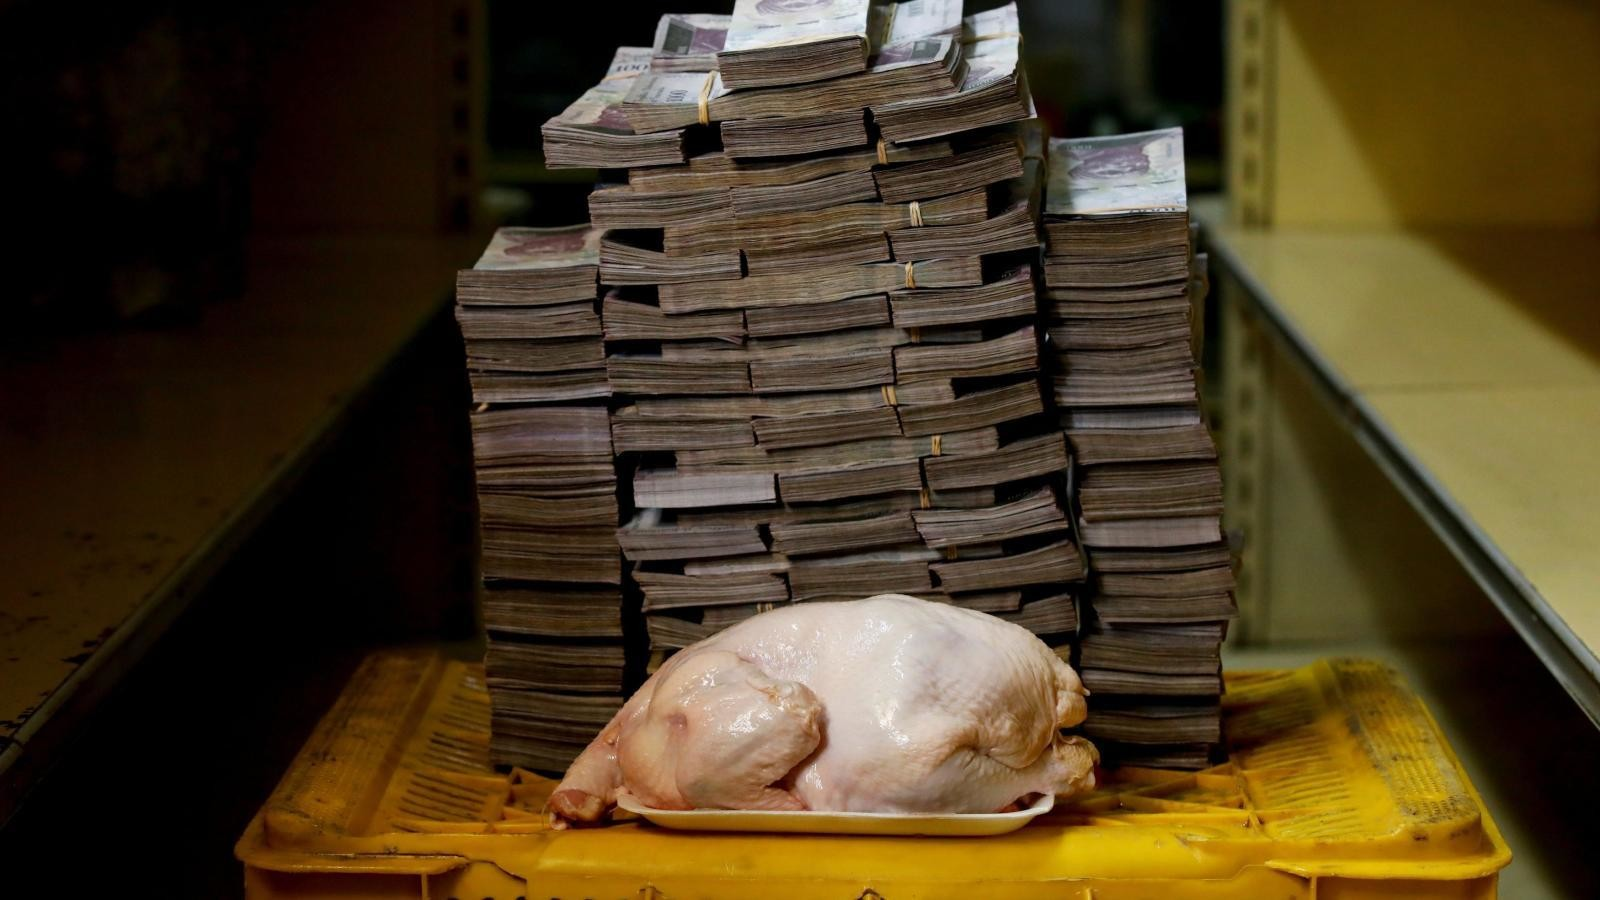 A 2.4 kilogram chicken cost 14,600,000 bolivares ($2.22) before Venezuela slashed five zeros from its currency.